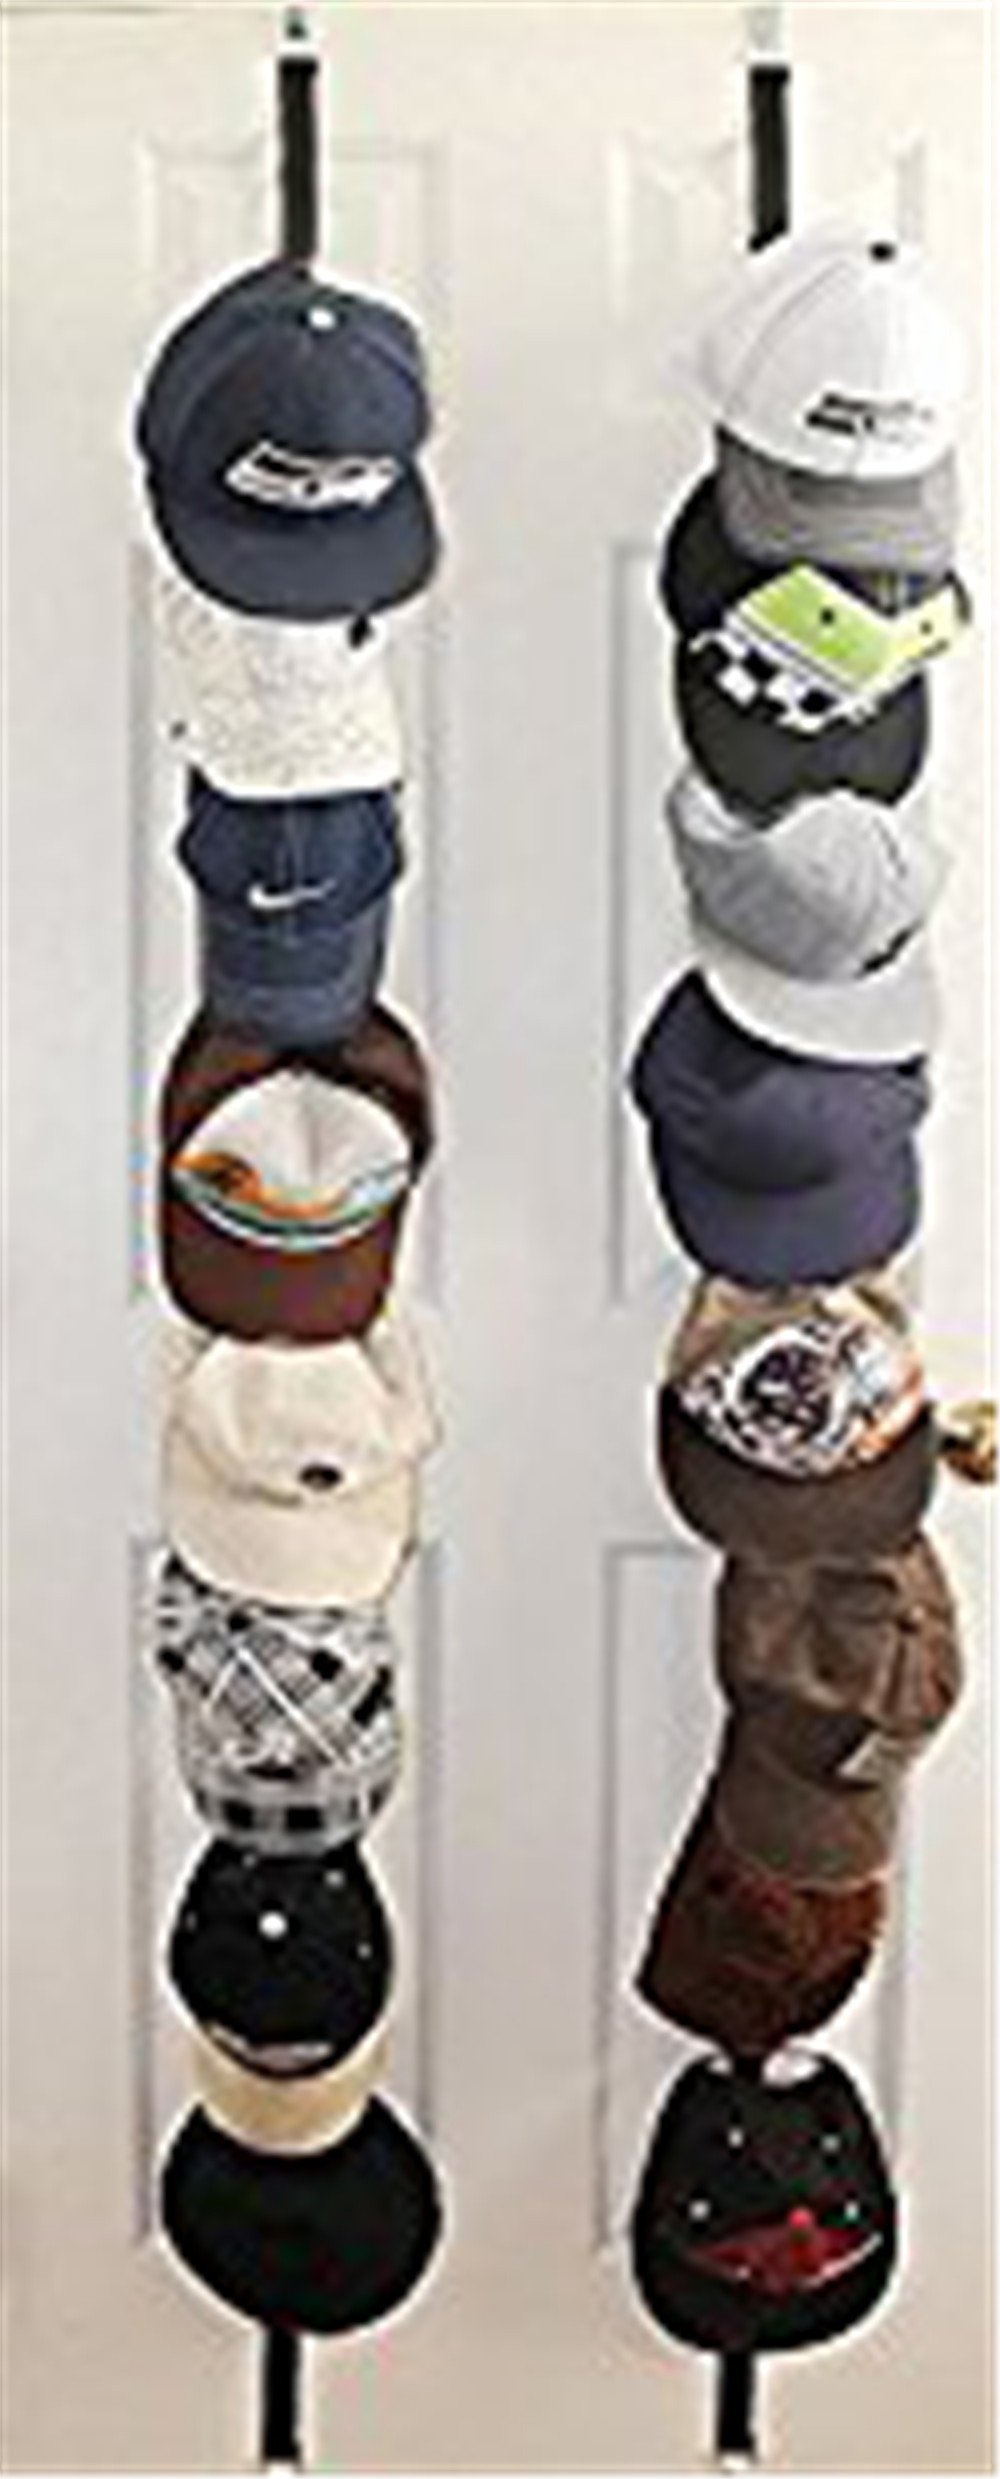 ZARO Hat Holder for Door, Adjustable Bag Hanger for Closet Cap Rack Baseball Hat Storage Organizer Ball Caps Cord Shelf Bedroom Decoration for Guys Girls-2 Sets for Black